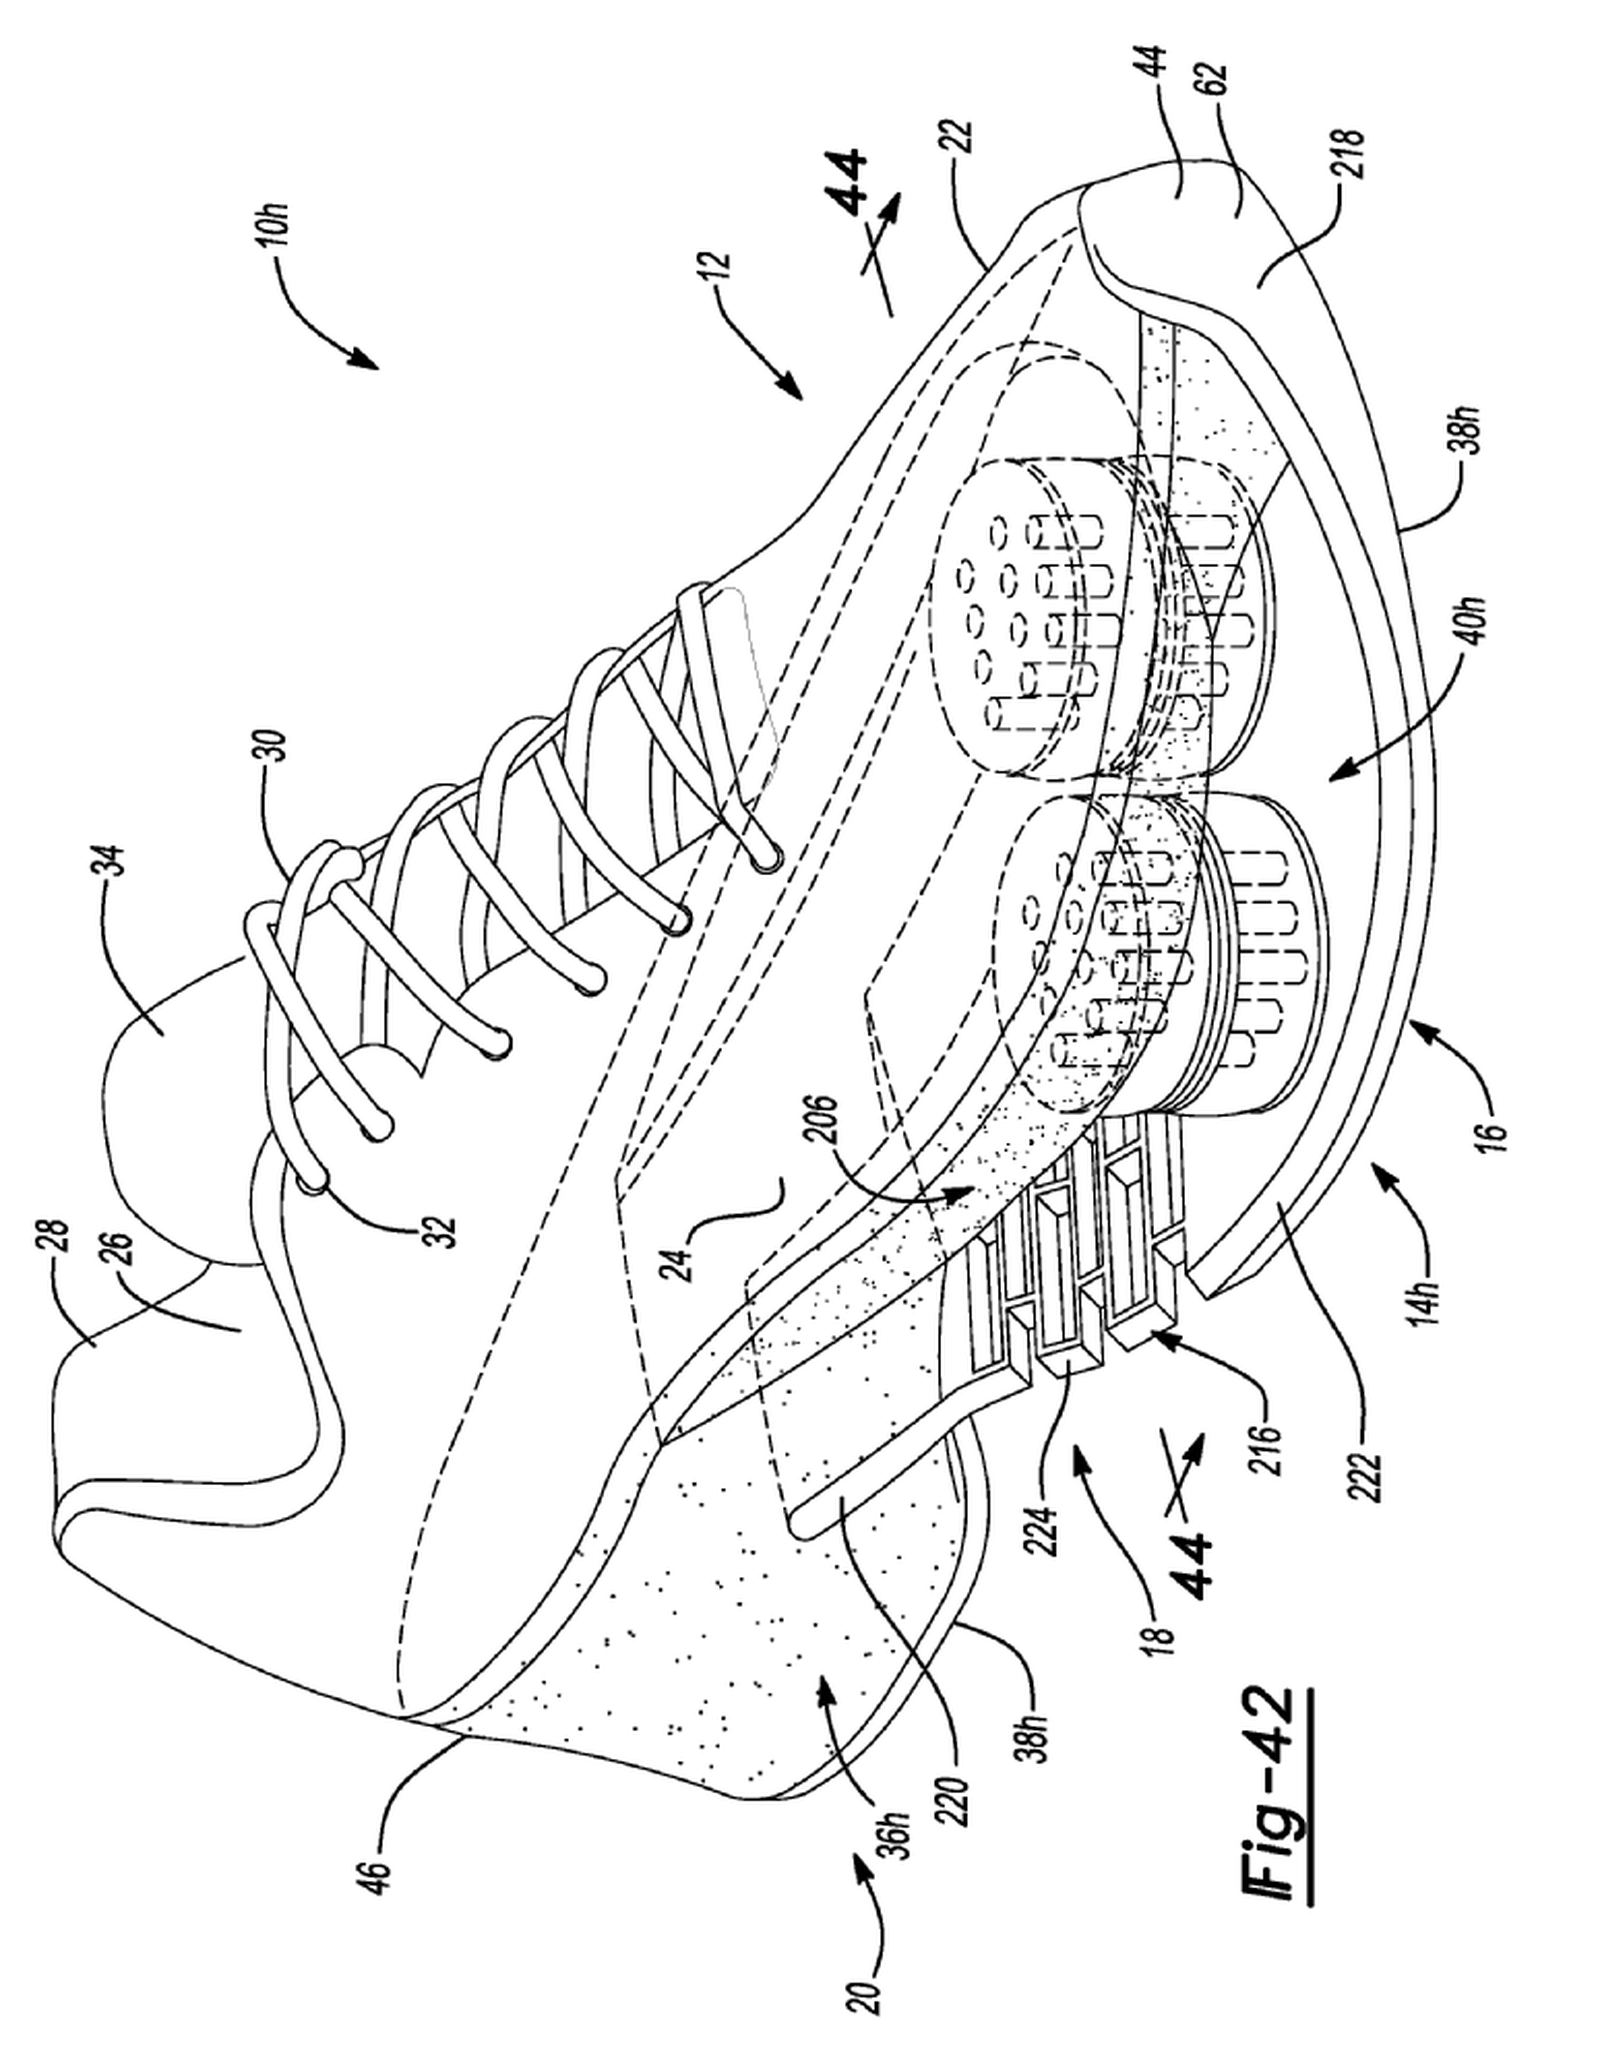 nike-running-shoes-banned-patent-2